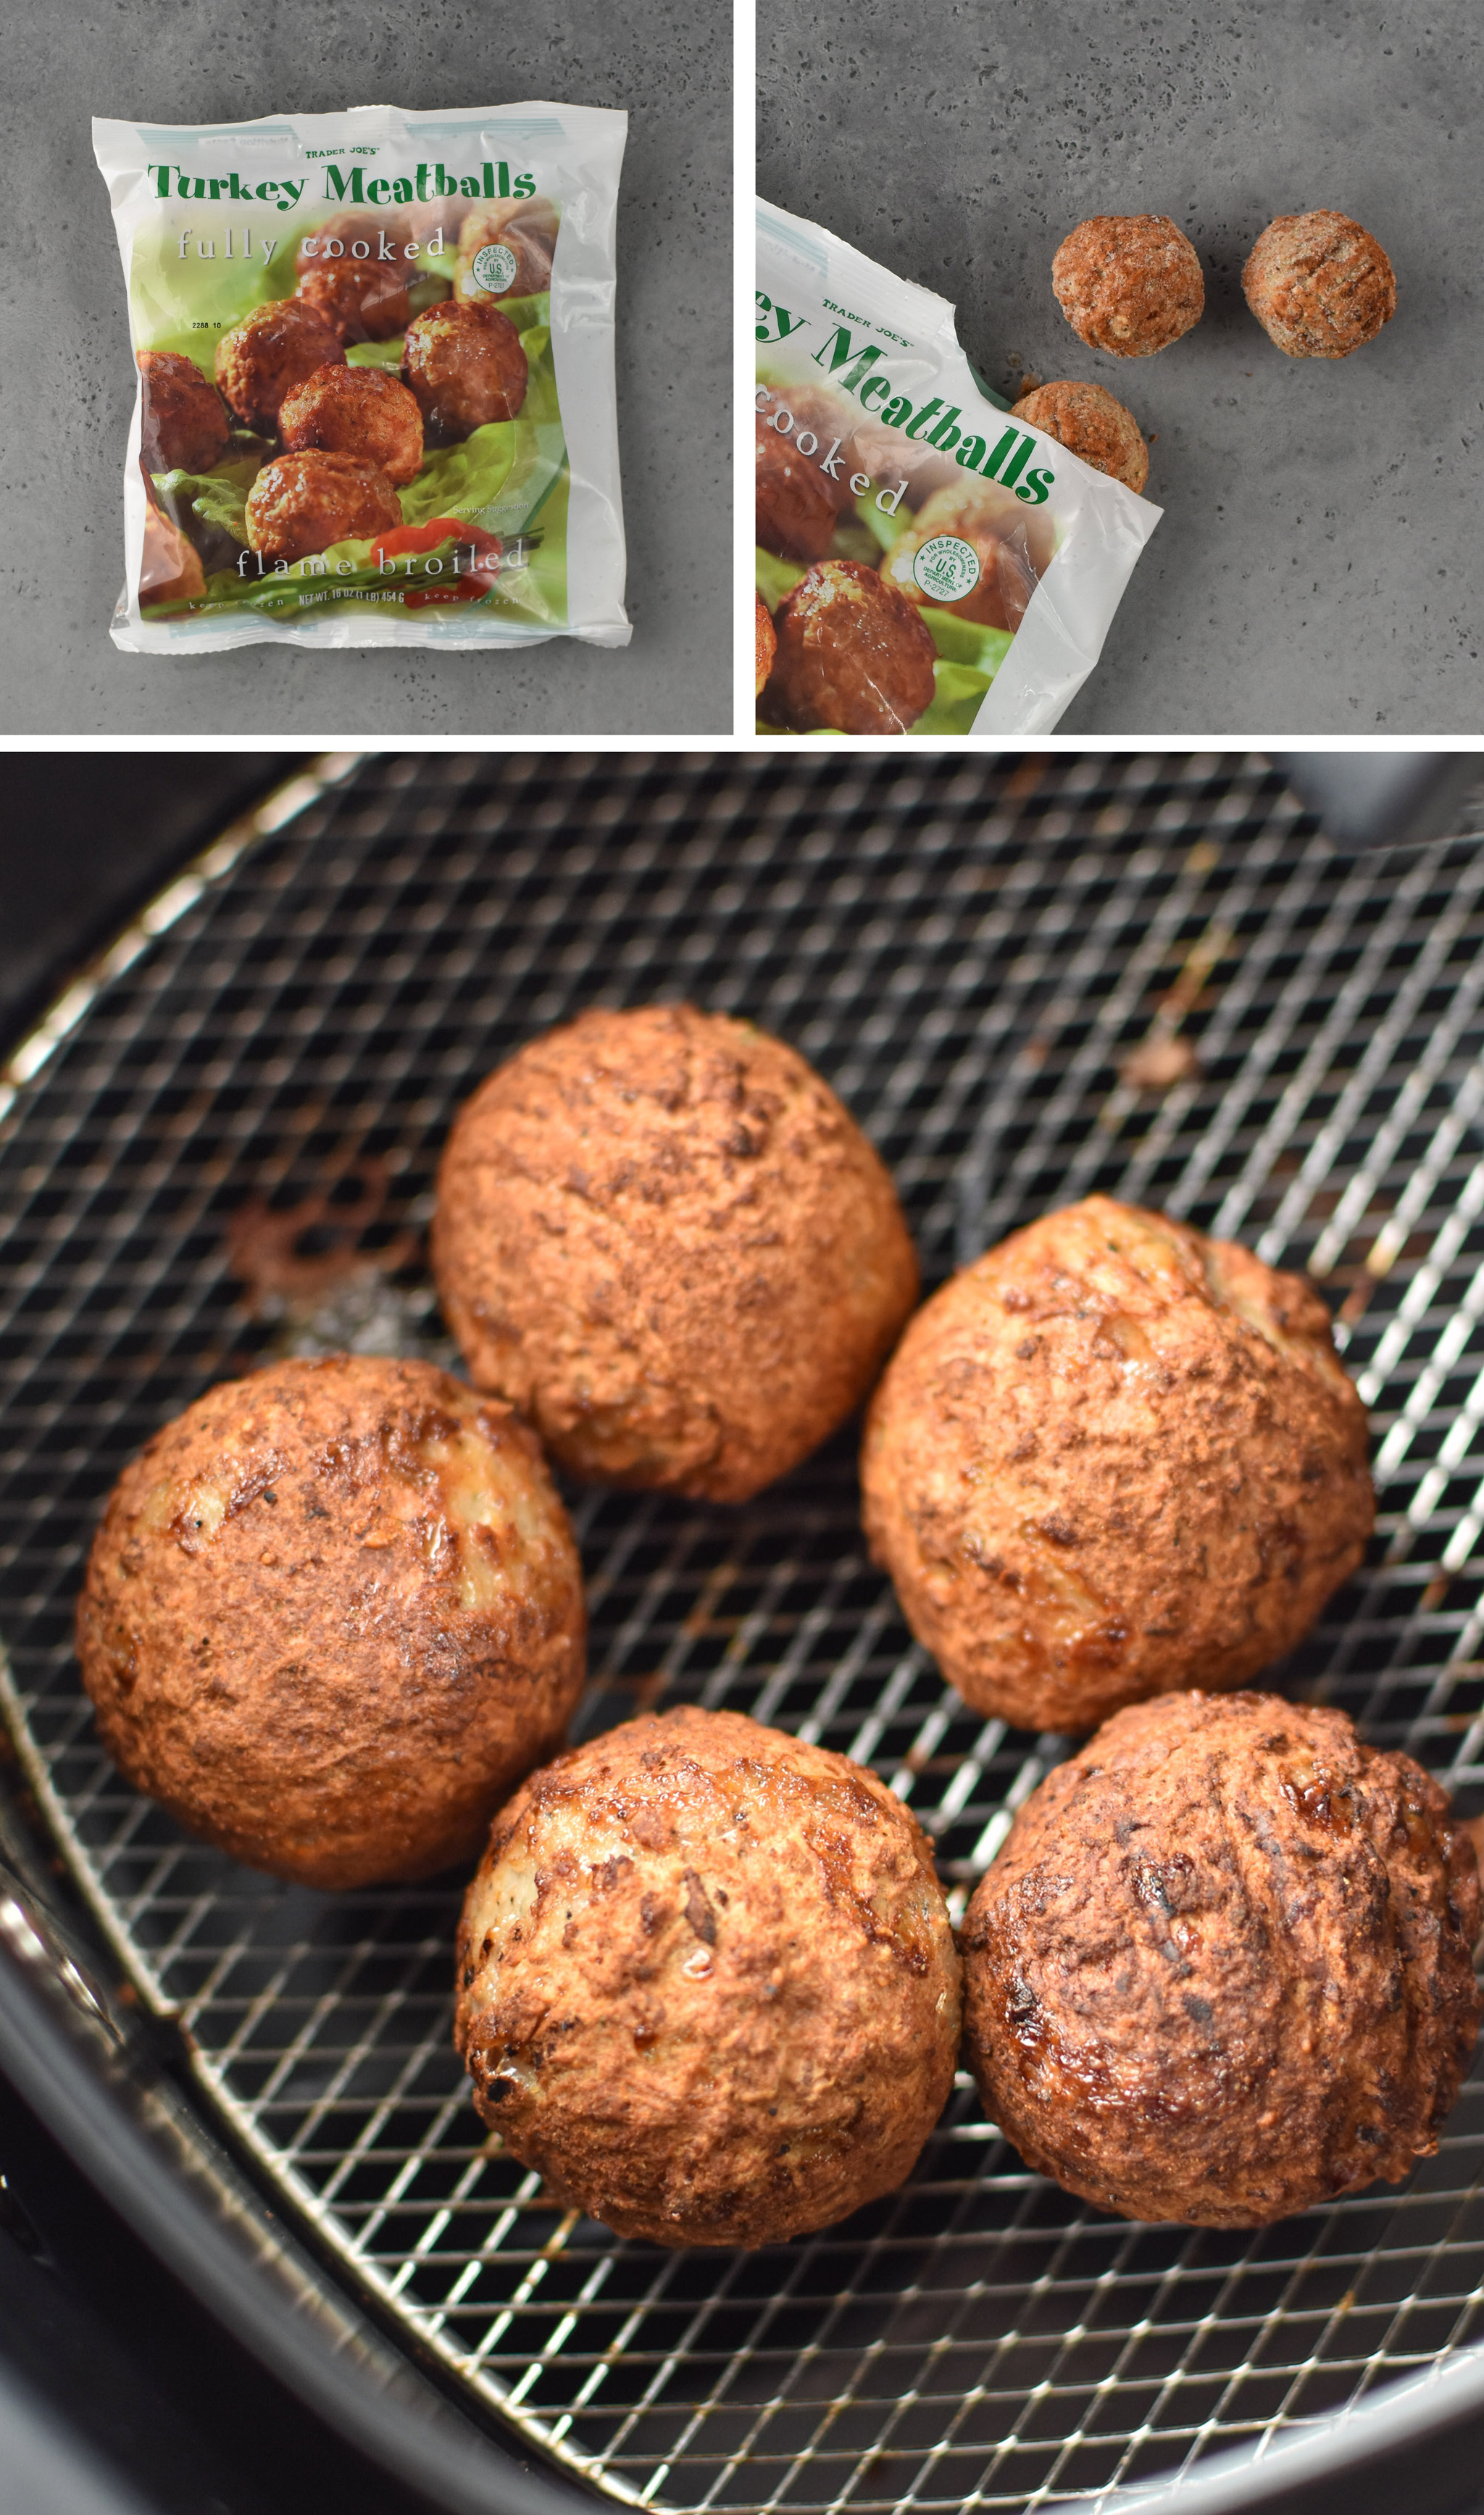 Turkey meatballs from Trader Joe's made in the air fryer